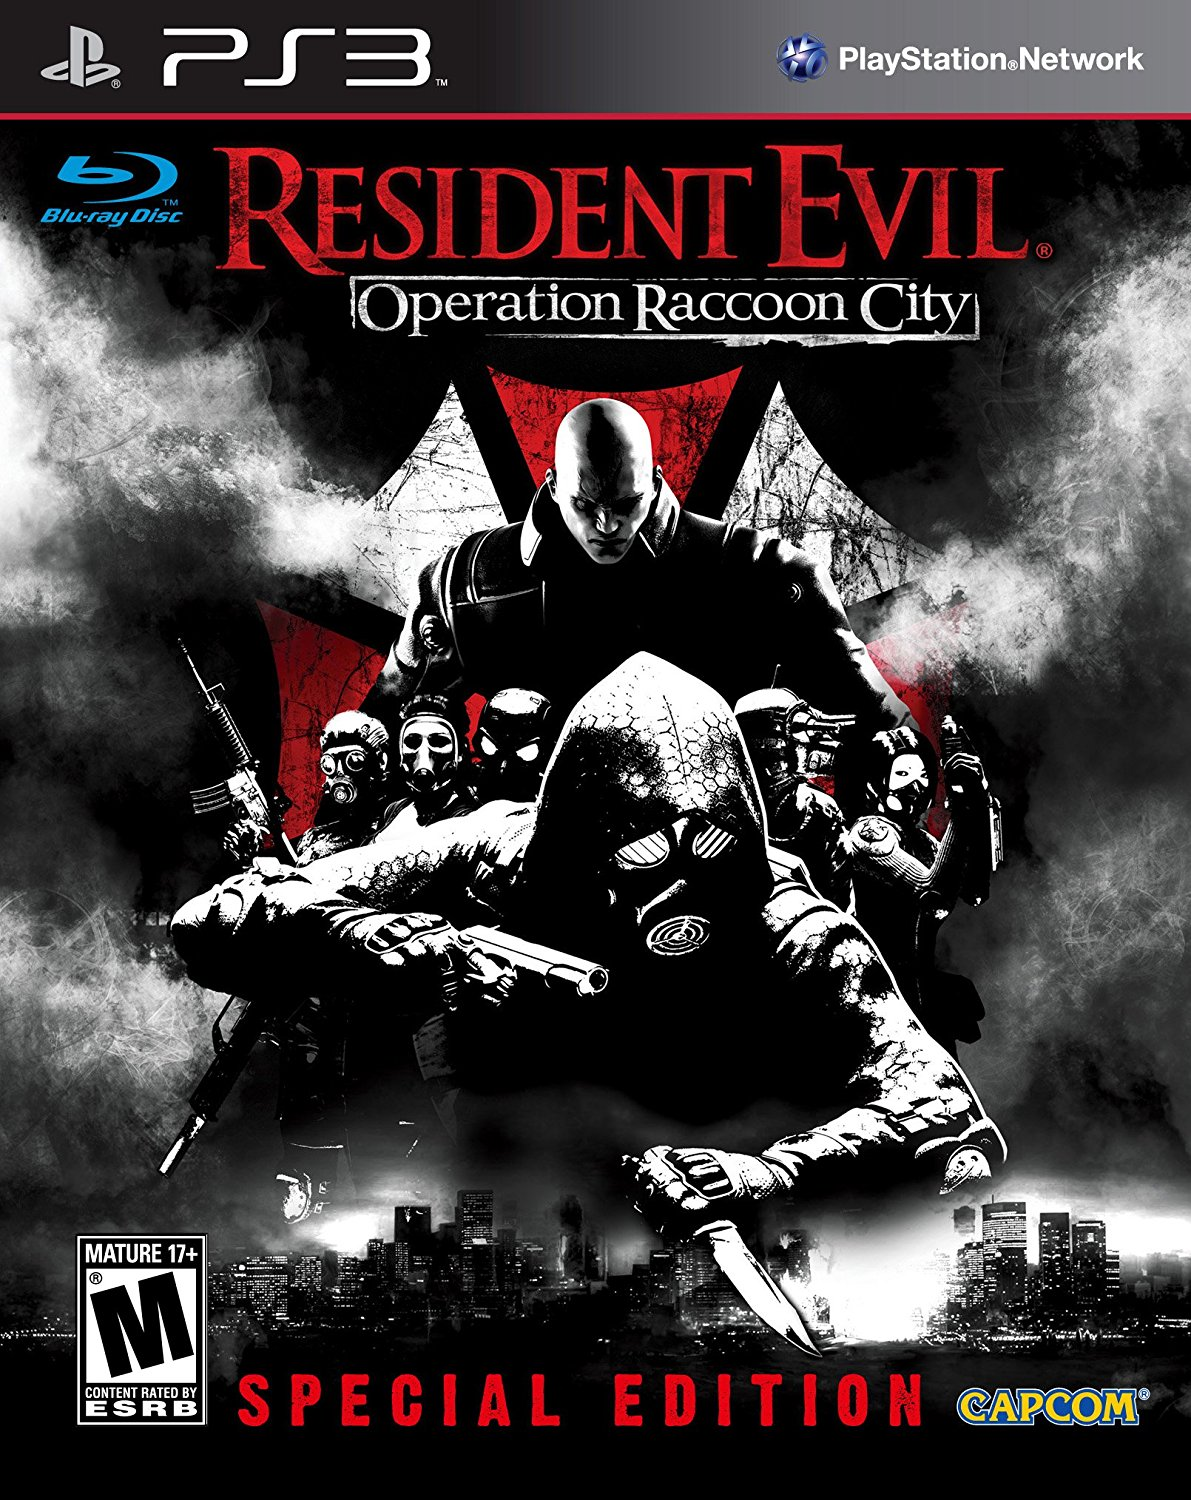 Resident Evil: Operation Raccoon City Special Edition